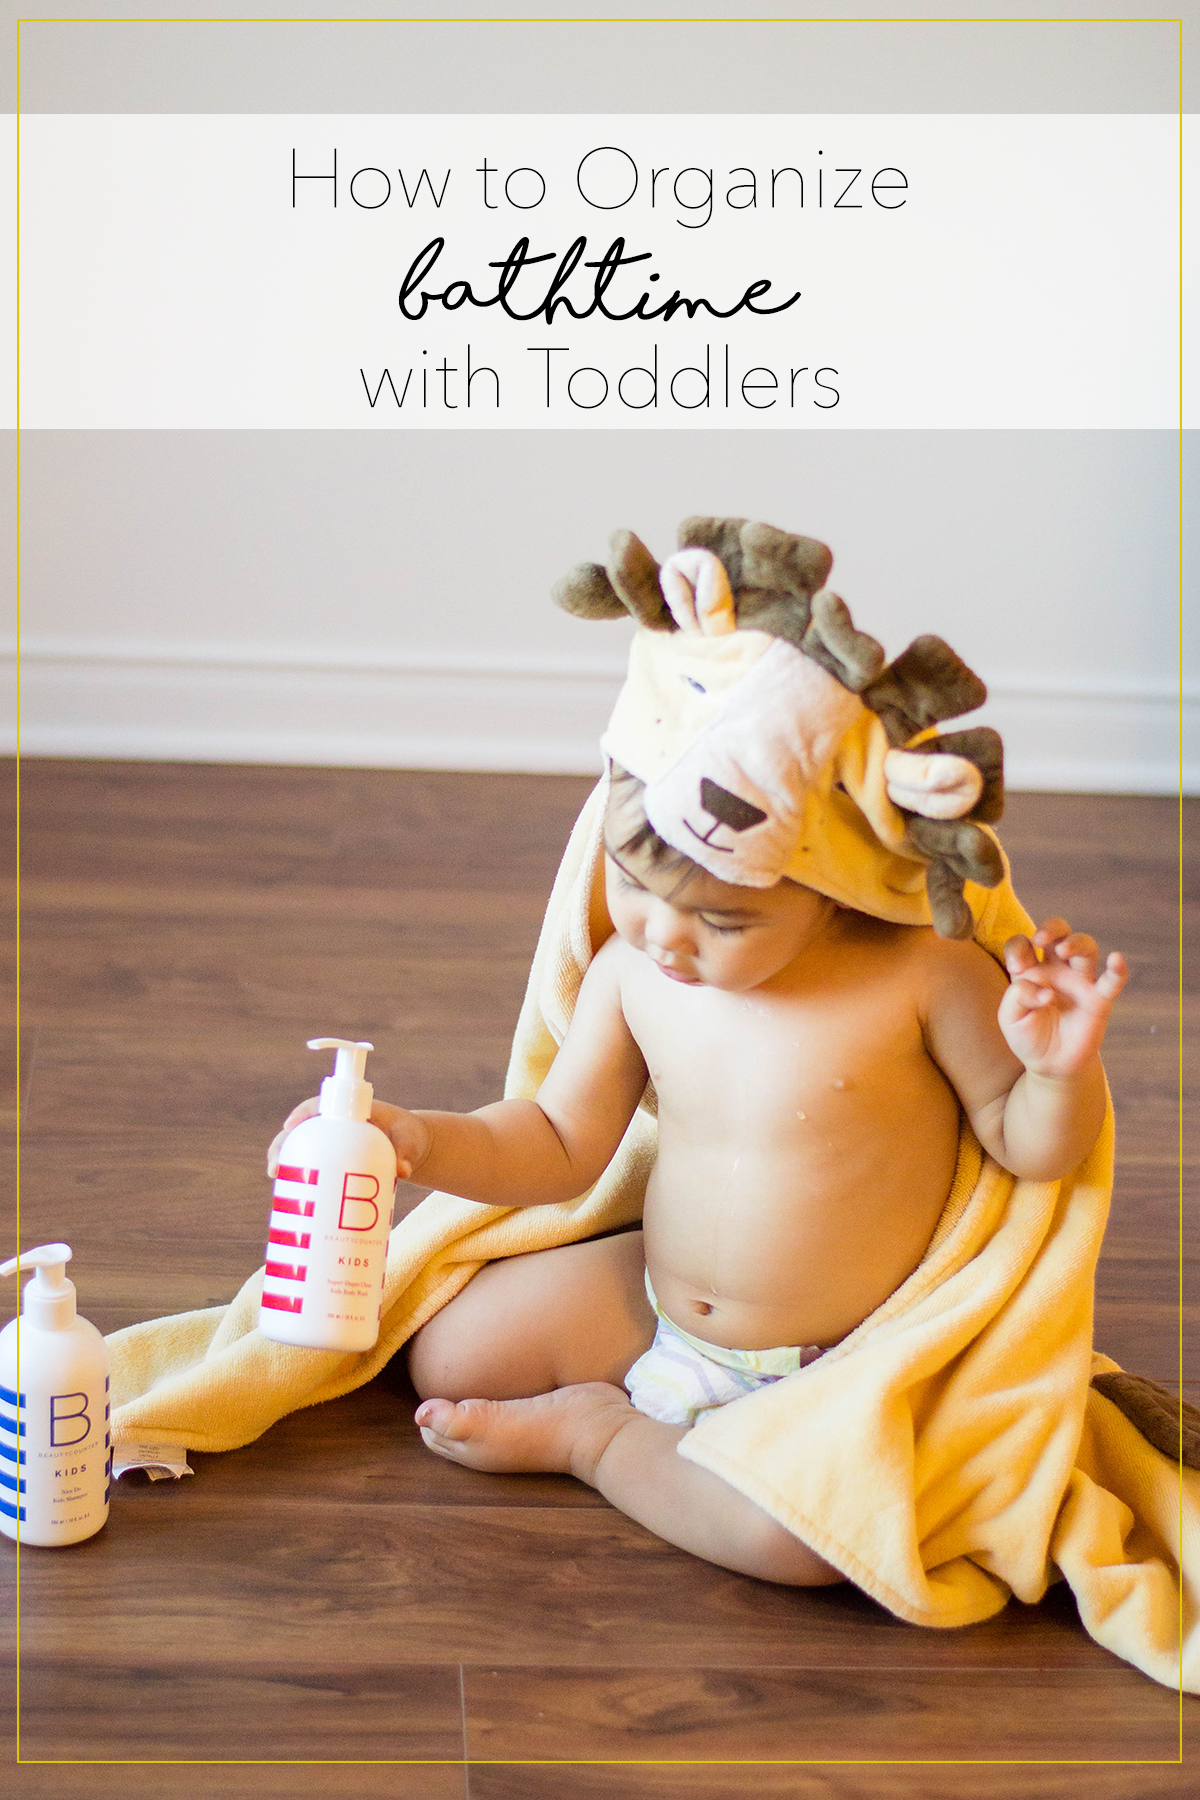 How to organize bathtime with toddlers - making bathtime fun with a consistent routine.